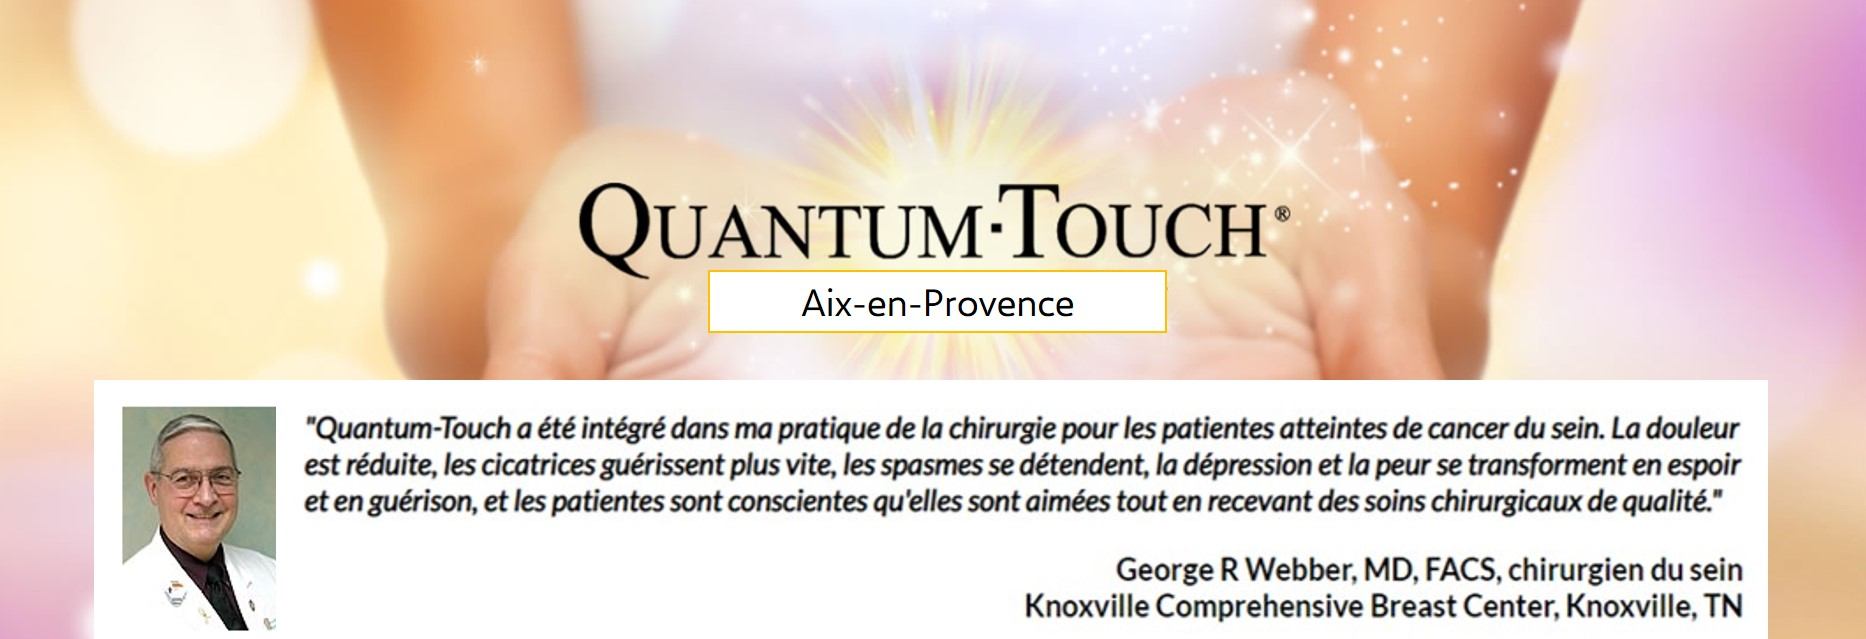 Quantum Touch temoignage George R Webber & annonce event_4.jpg